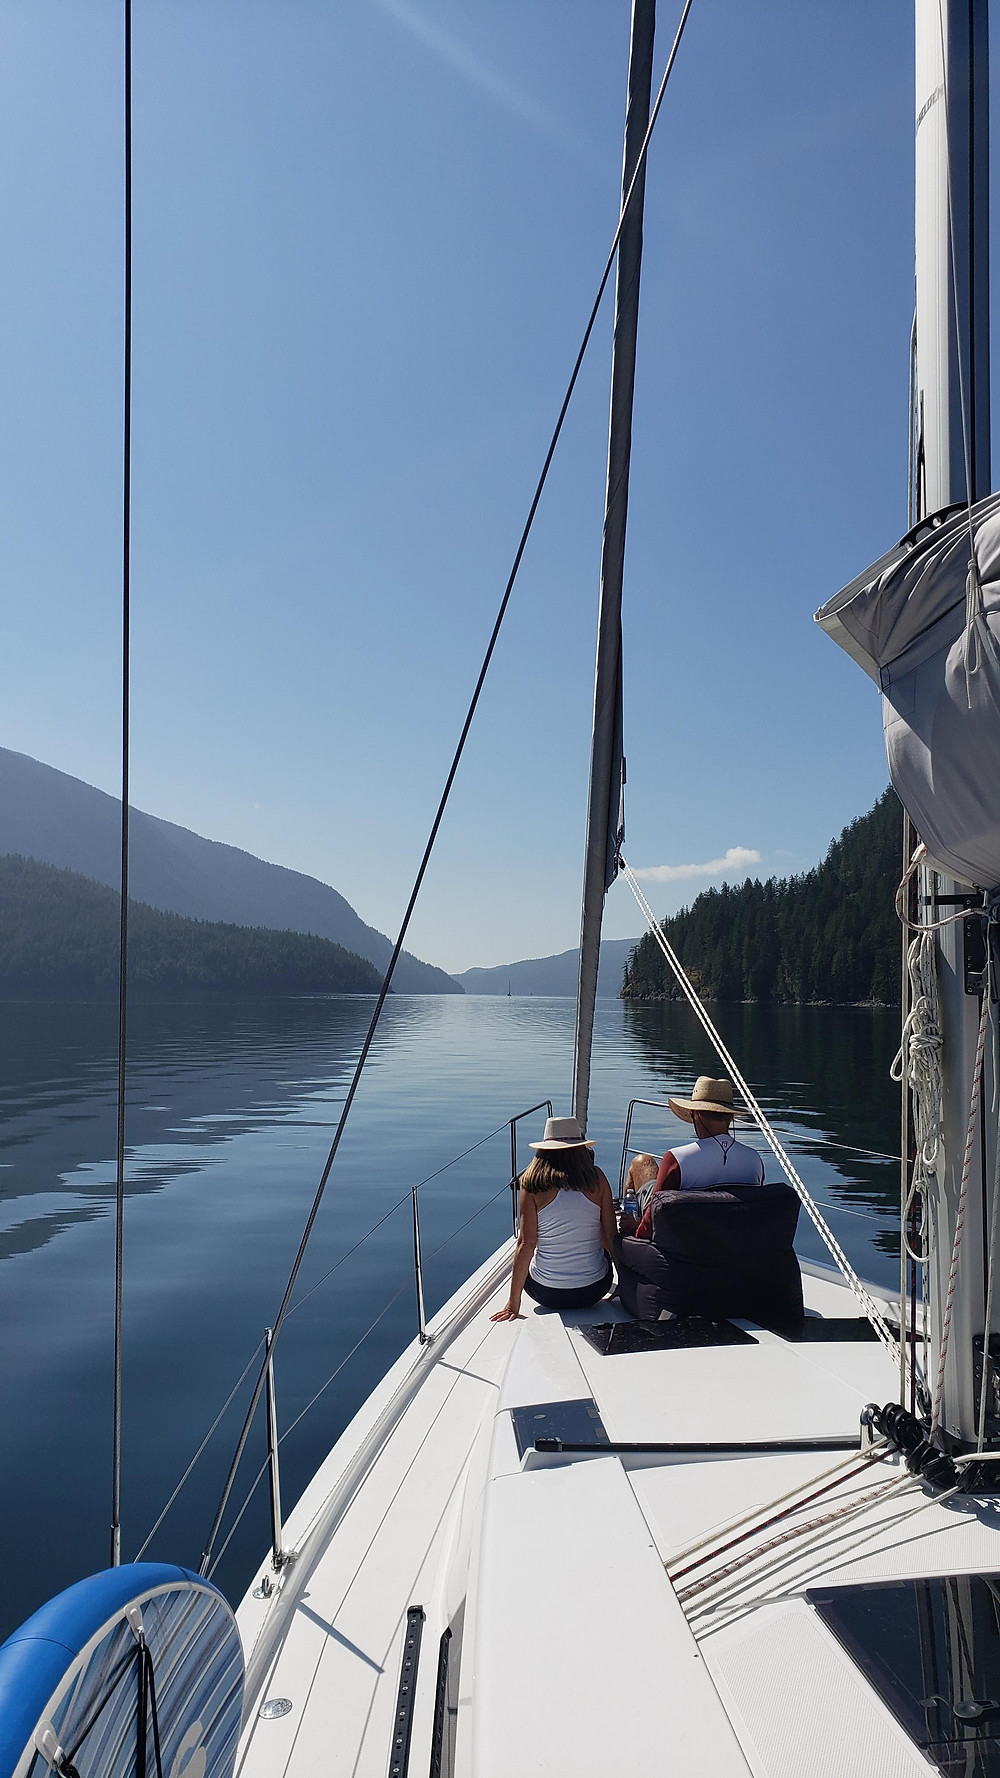 Sailing in Desolation Sound, BC